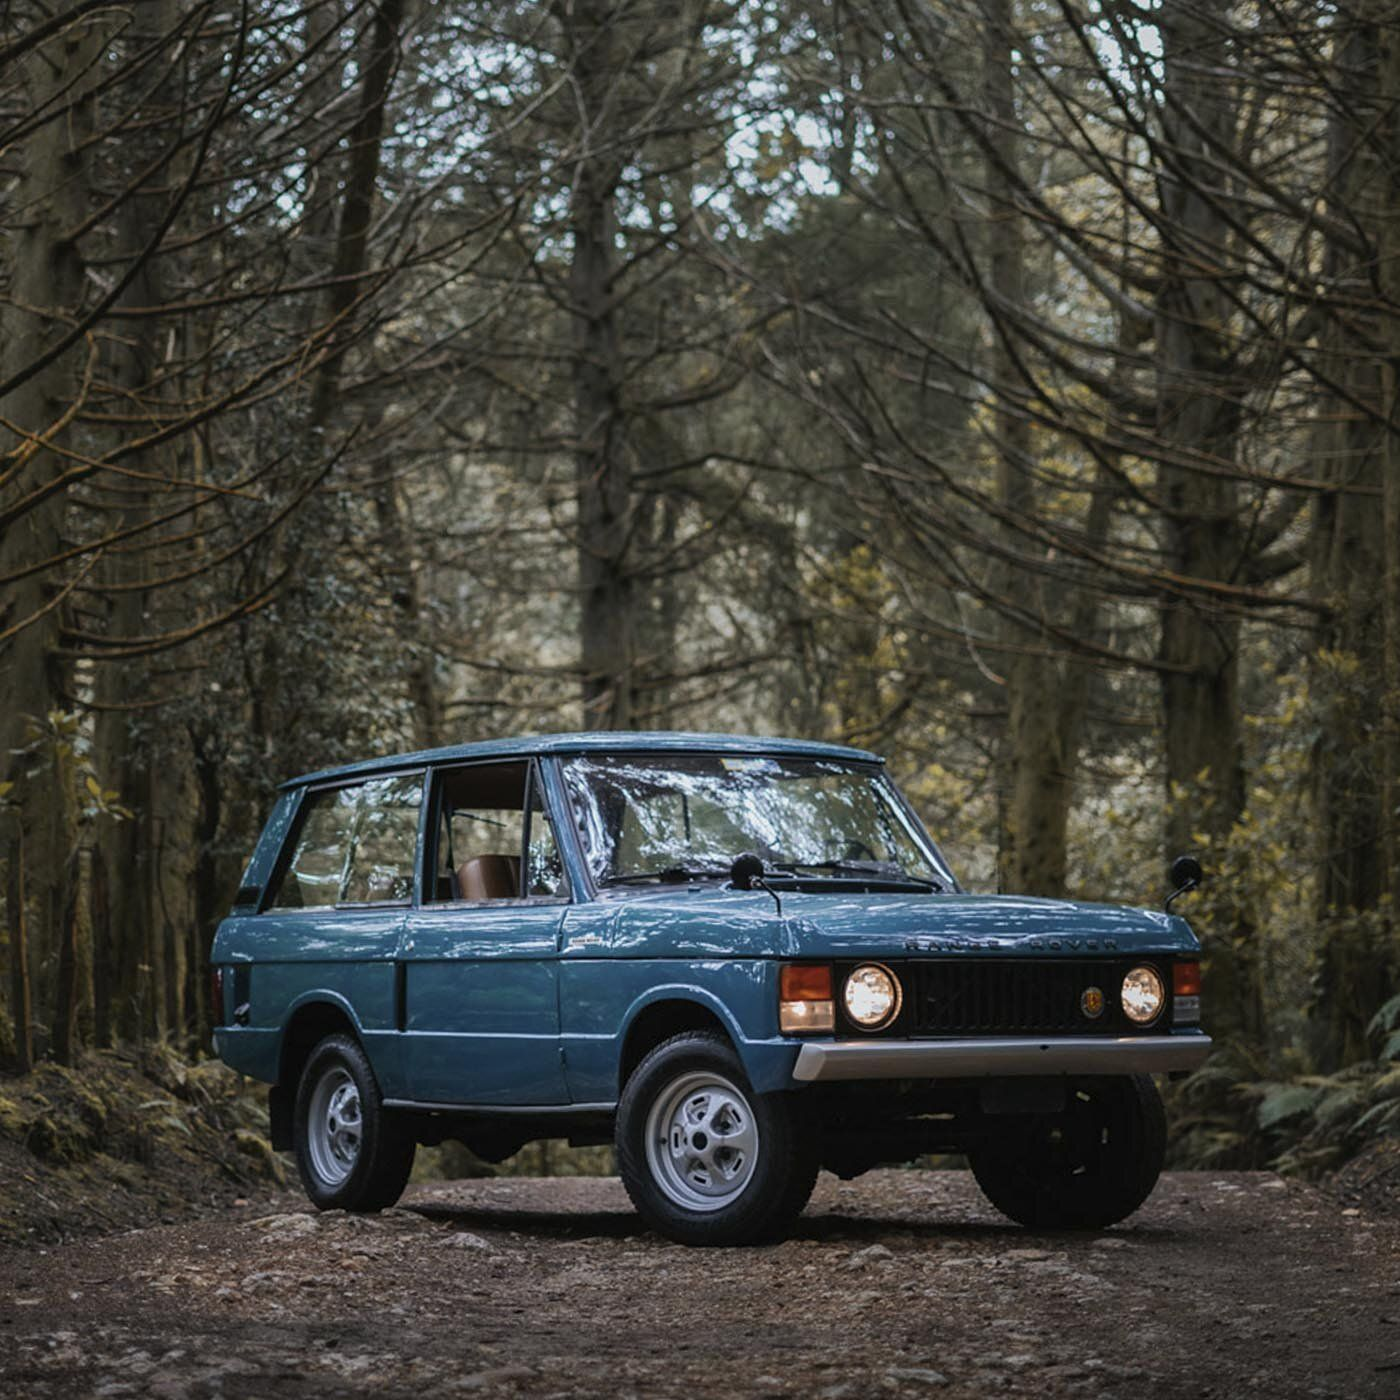 Pin By Lord Kirby On Garage Range Rover Classic Range Rover Land Rover For Sale